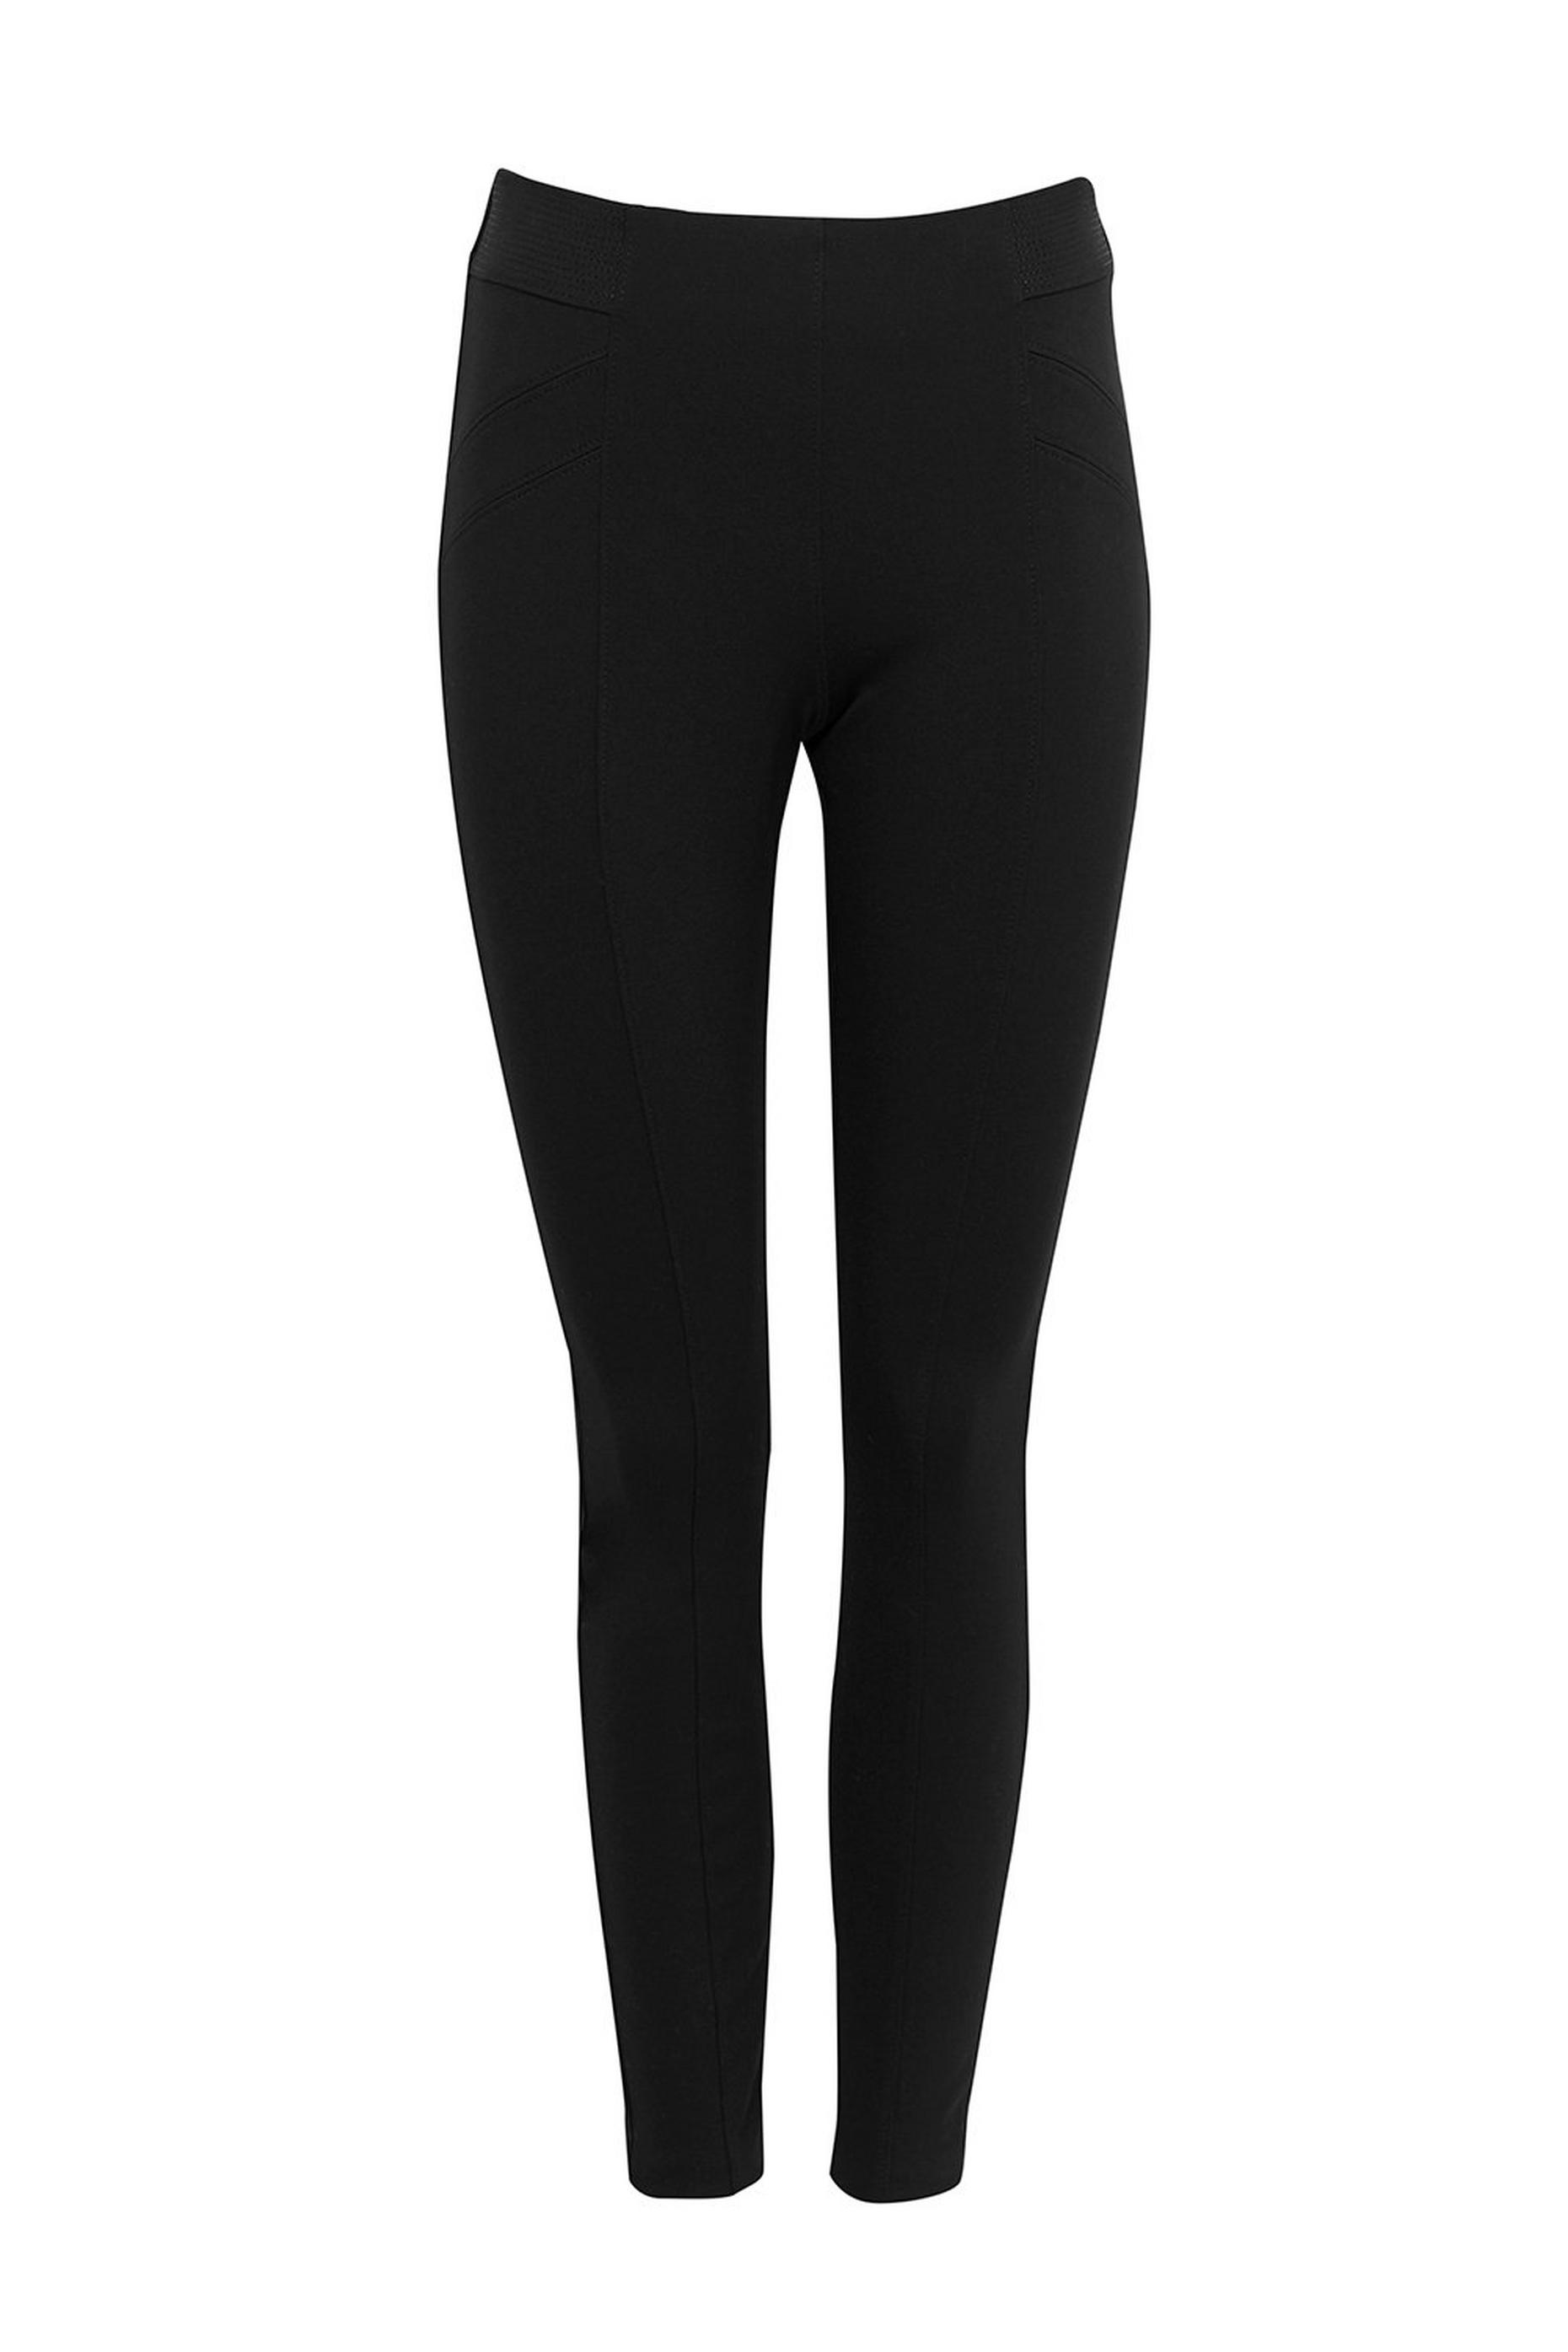 Black Ponte Pull On Legging